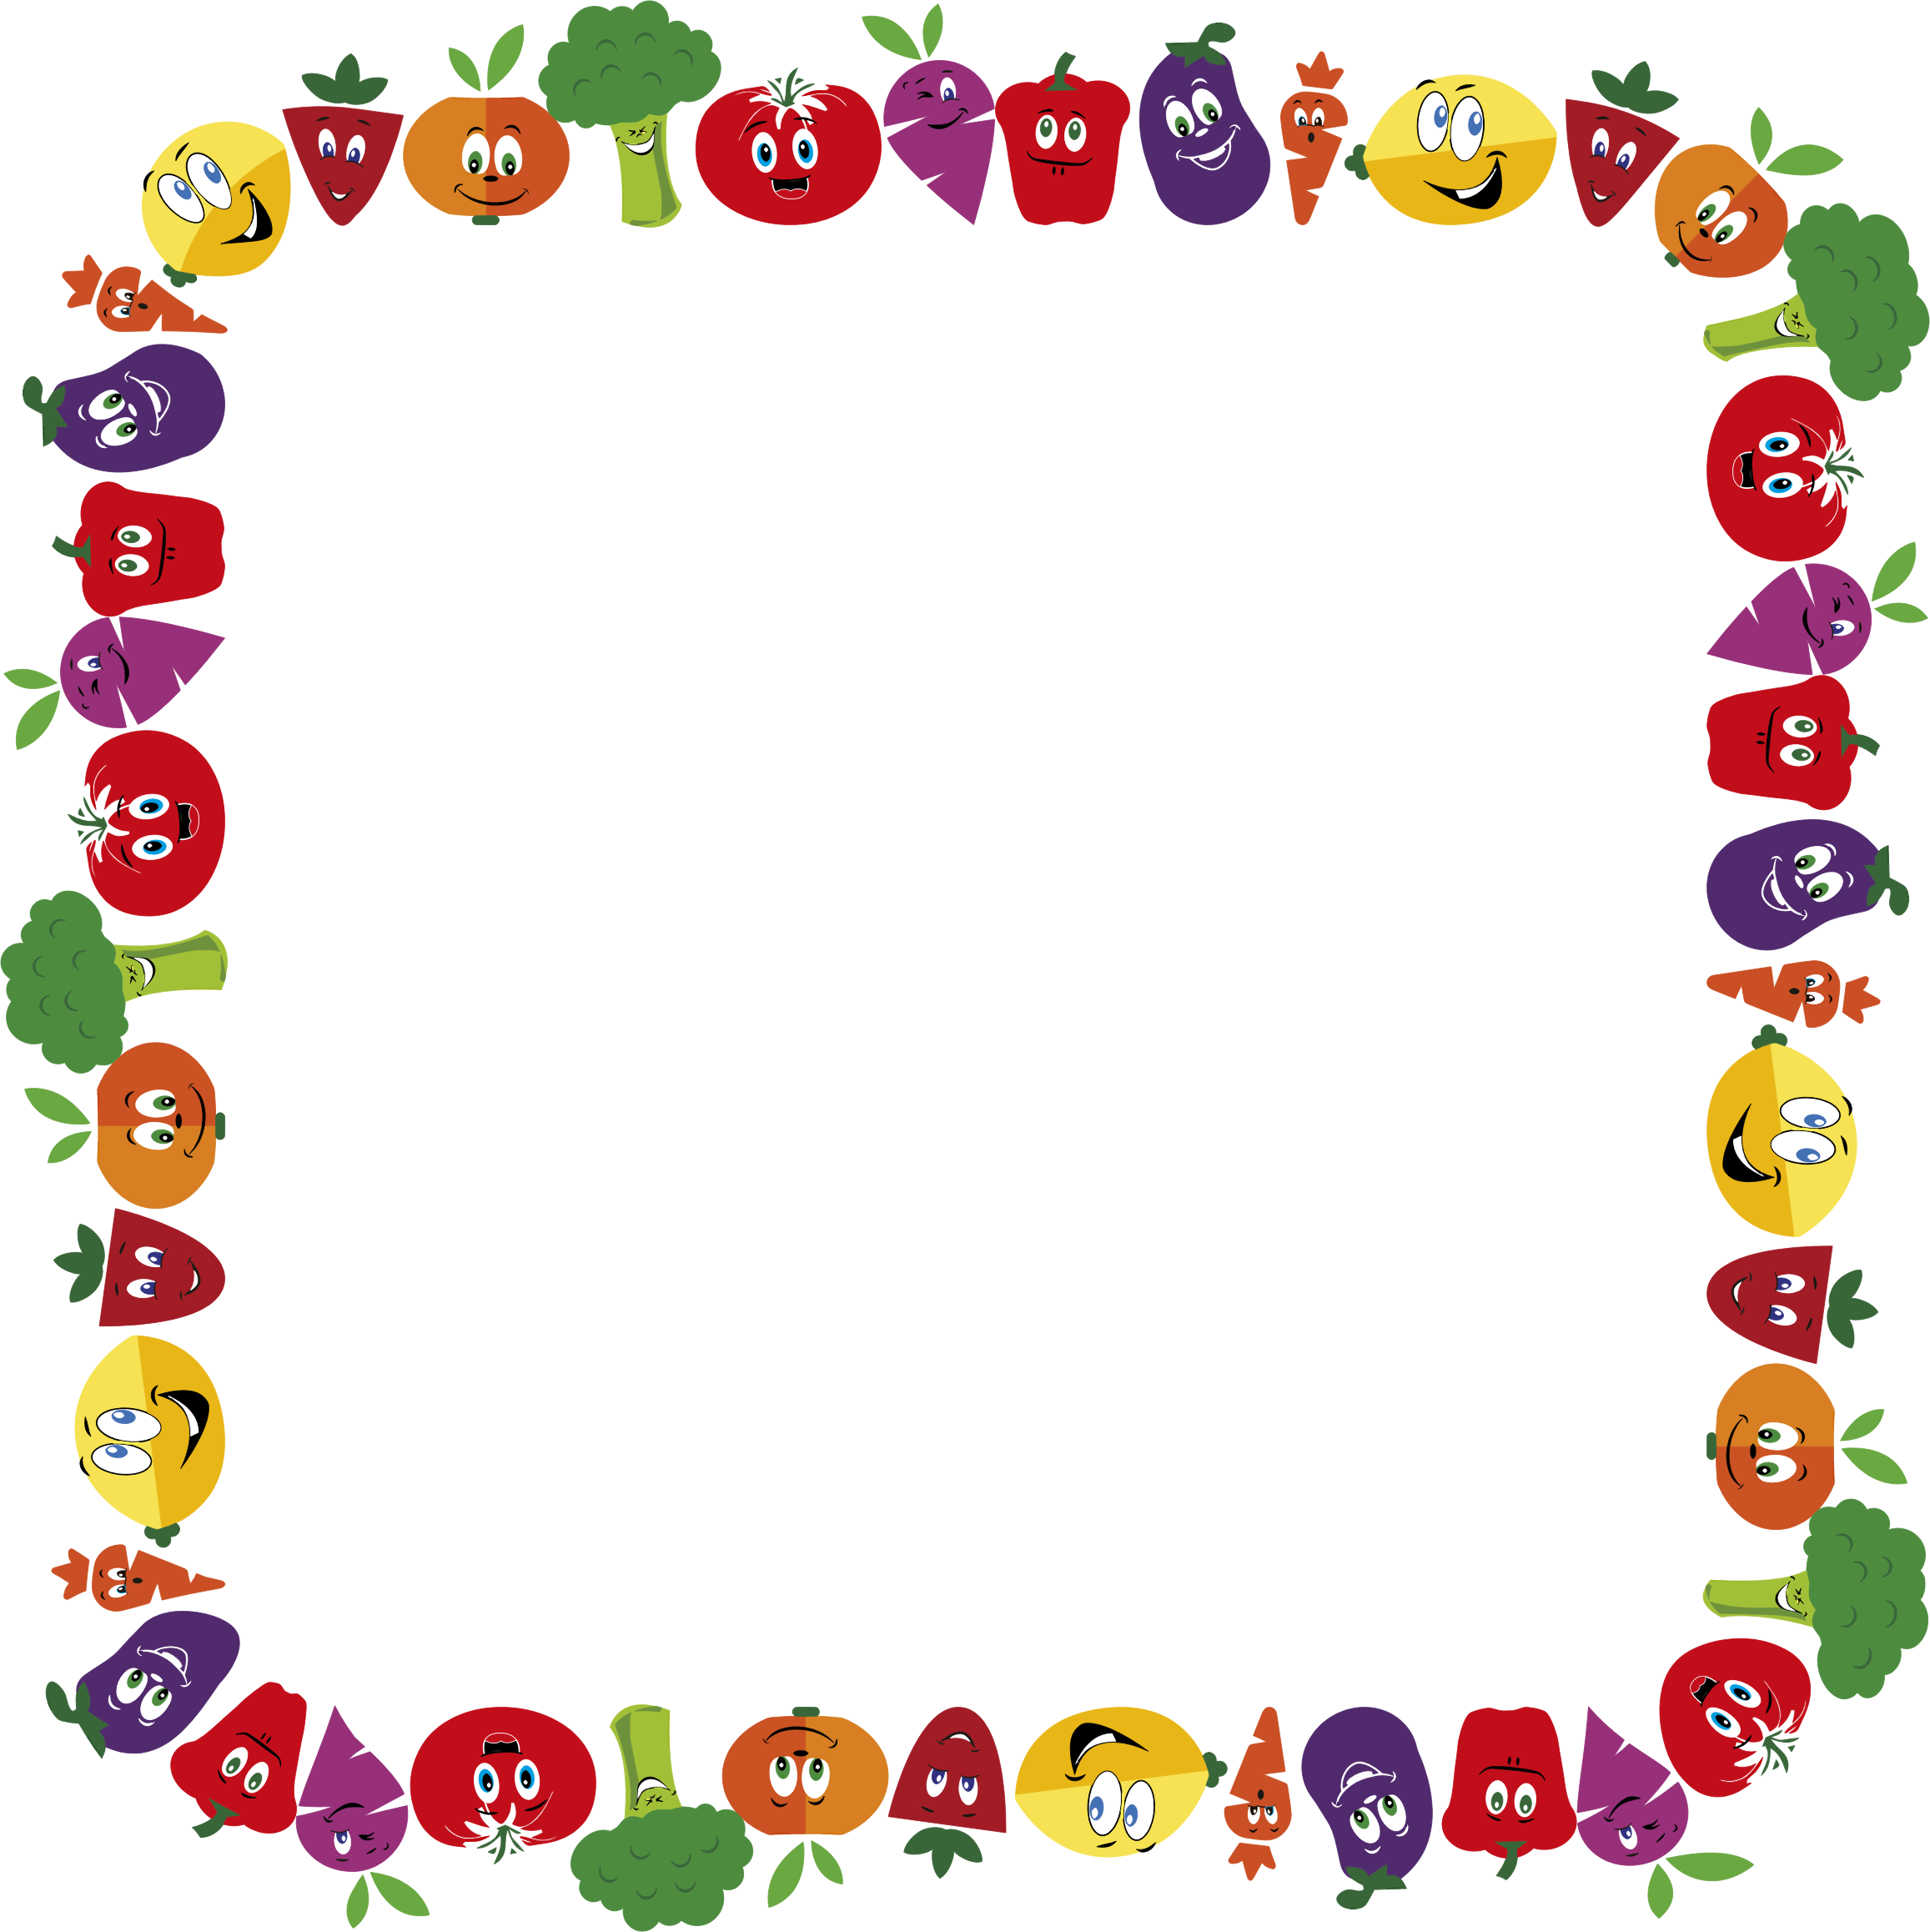 Anthropomorphic Fruits And Vegetables Frame 2 by GDJ